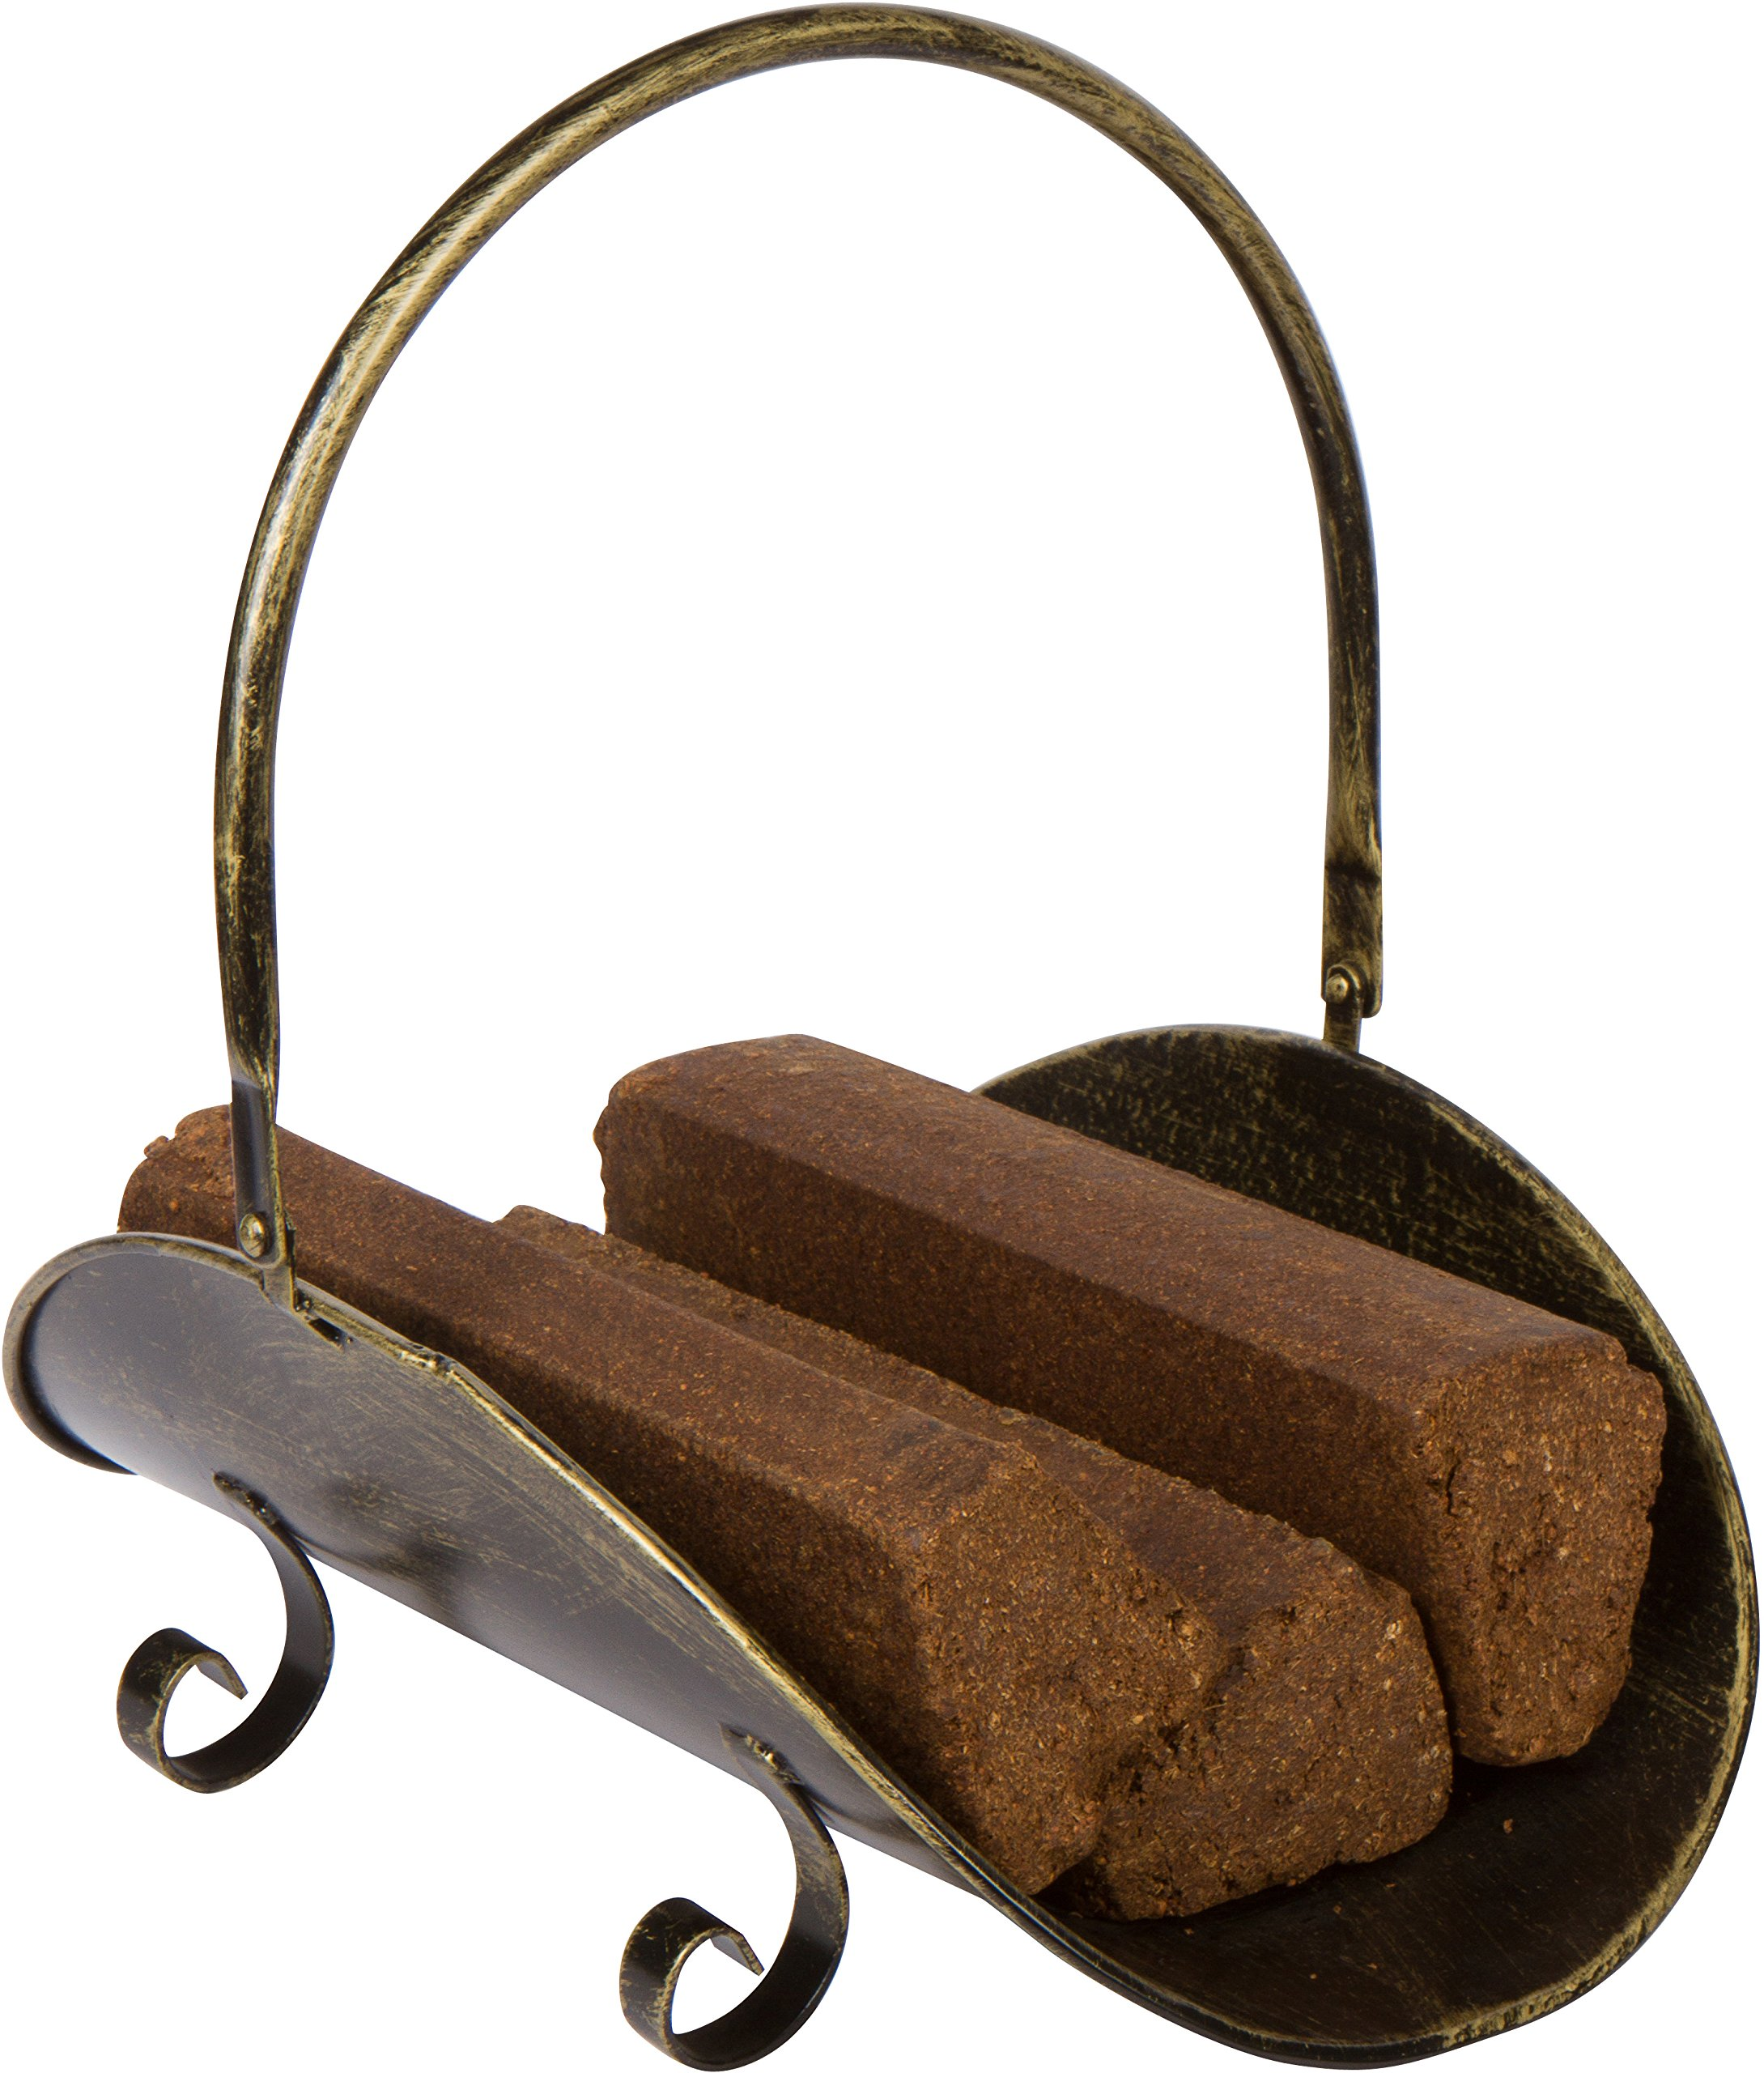 16.5'' Metal Firewood Log Holder Carrier - Bronze Finish for Indoor Use by Trademark Innovations